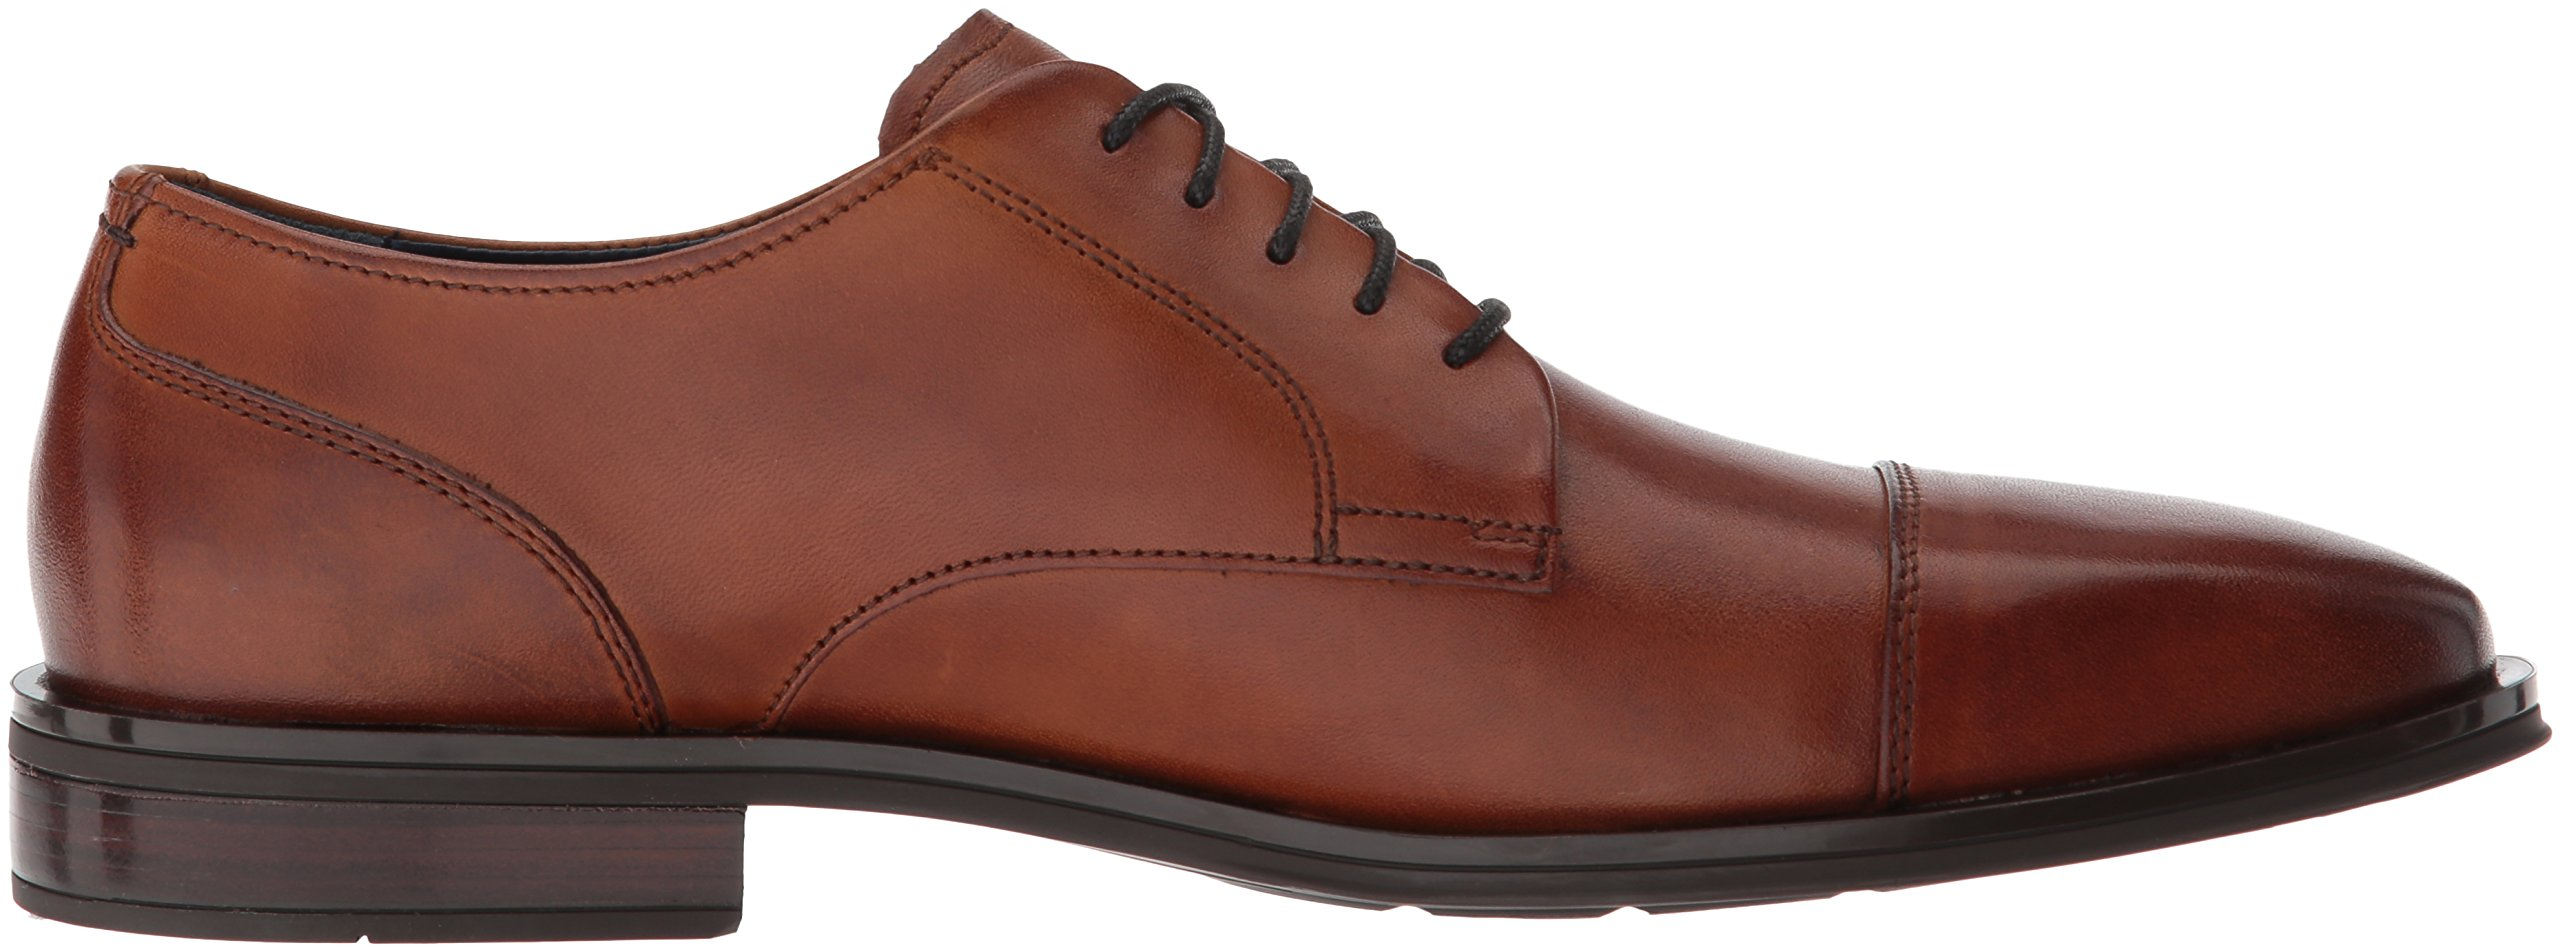 Cole Haan Men's Dawes Grand Cap Toe Oxford, British Tan, 11 Medium US by Cole Haan (Image #7)